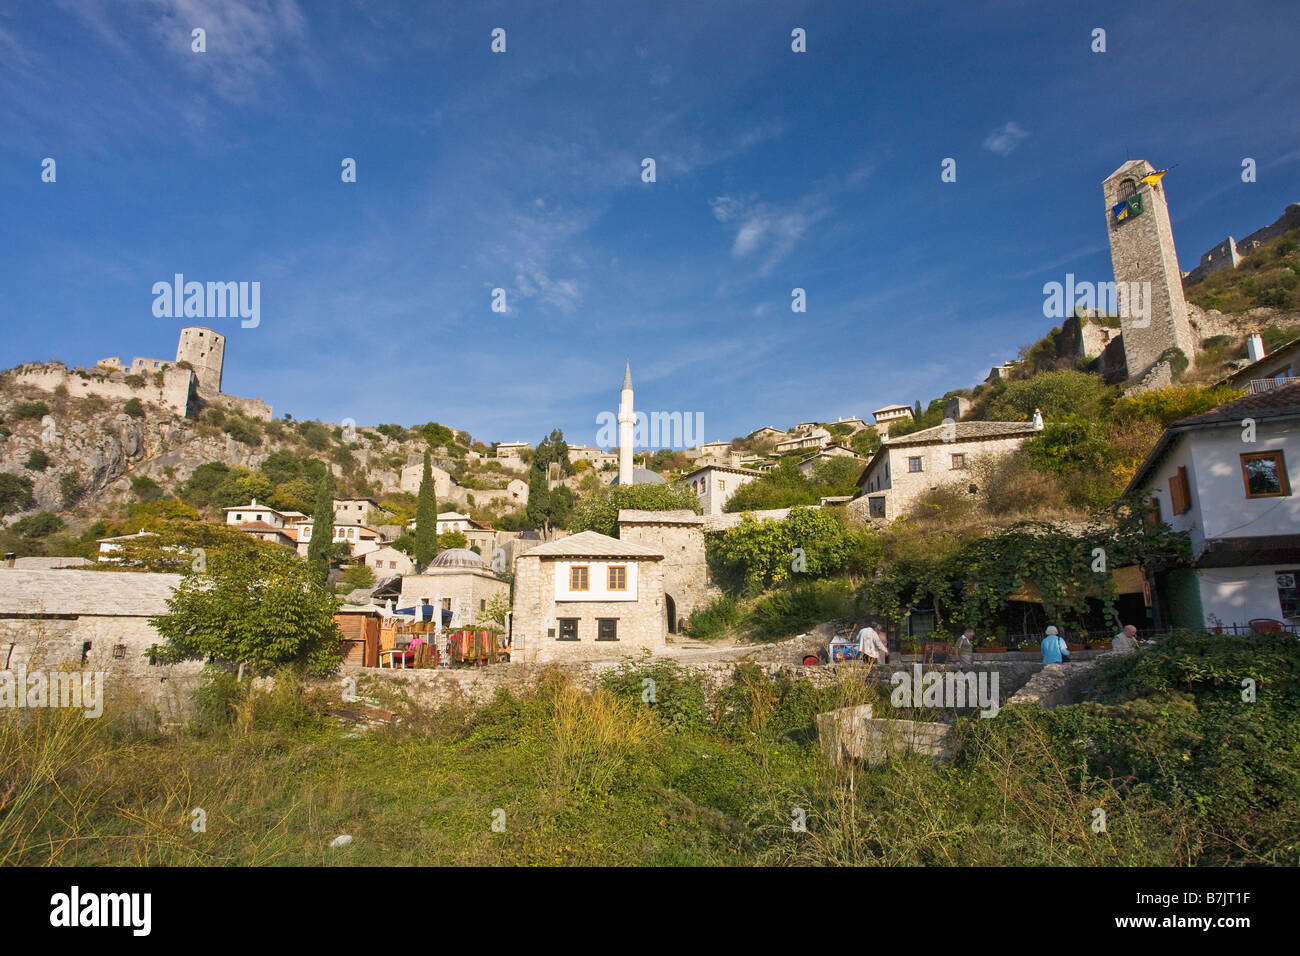 Historic Old Town Bosnia Herzegovina Europe - Stock Image